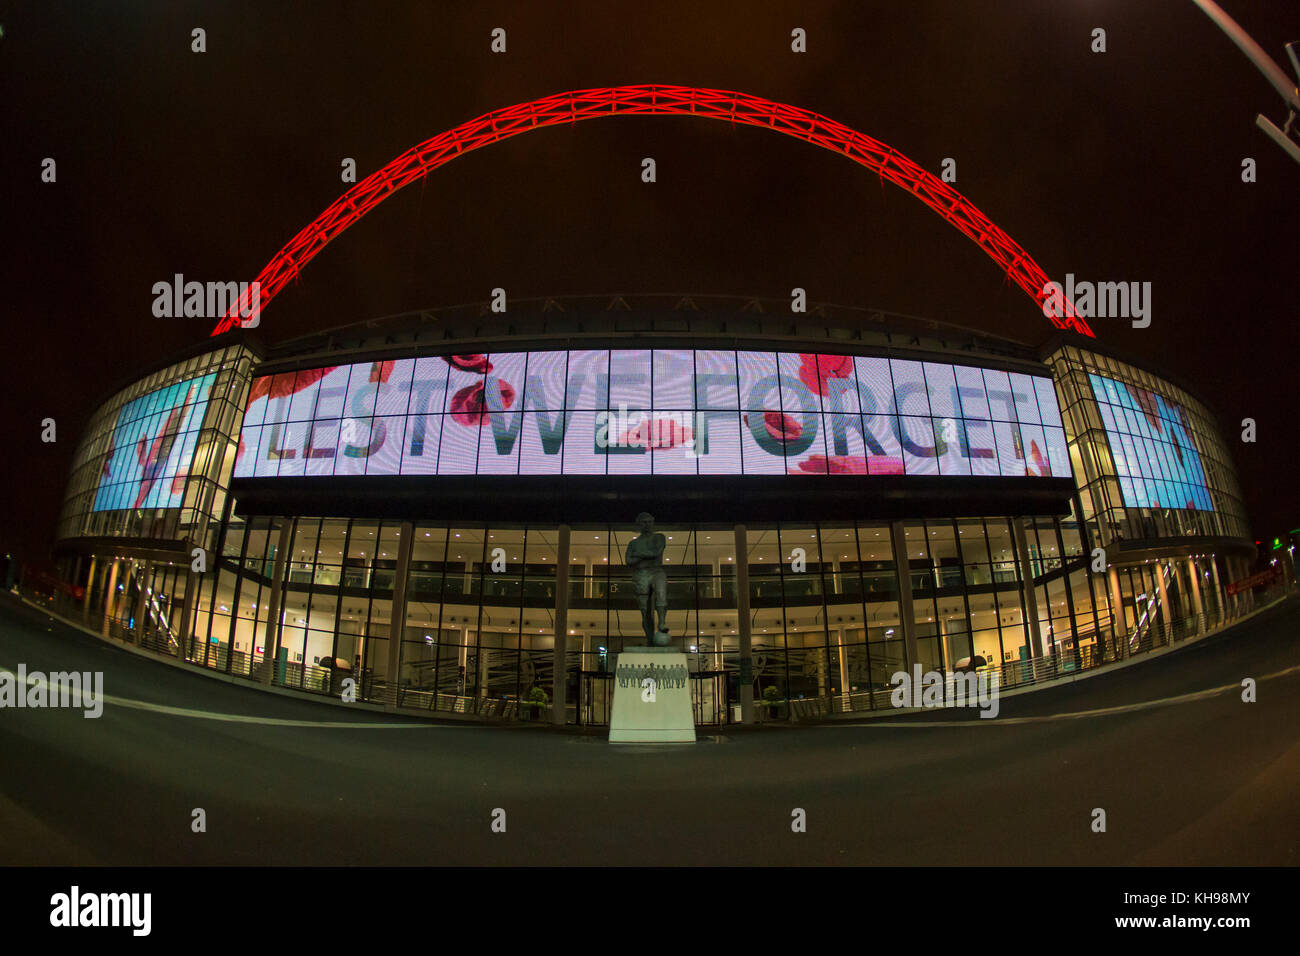 Wembley Stadium's arch lit red on Armistice Day to mark the fallen of WW1 - Stock Image